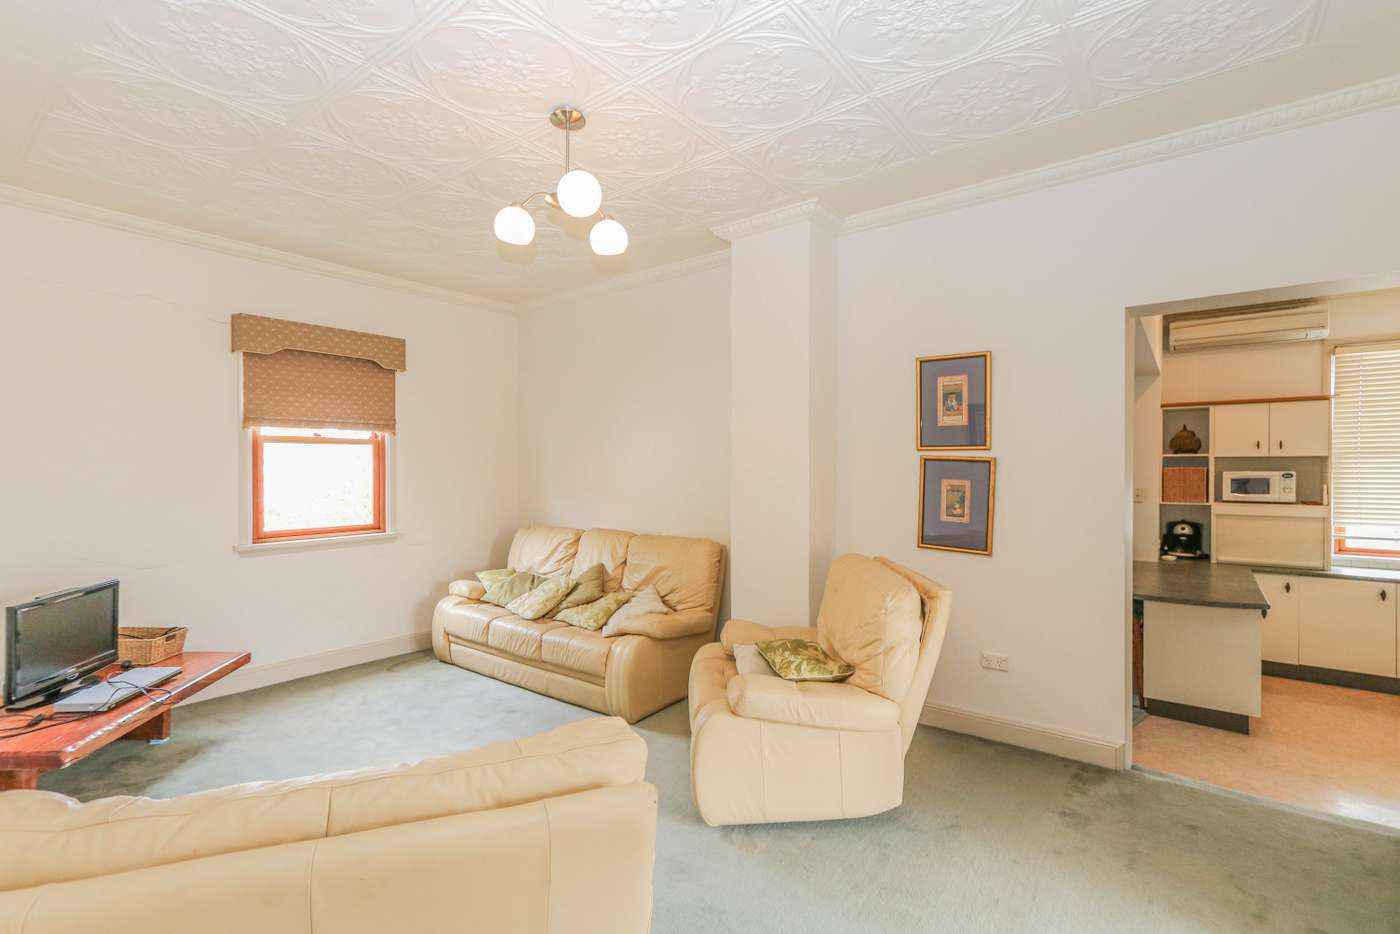 Fifth view of Homely townhouse listing, 221A George Street, Bathurst NSW 2795